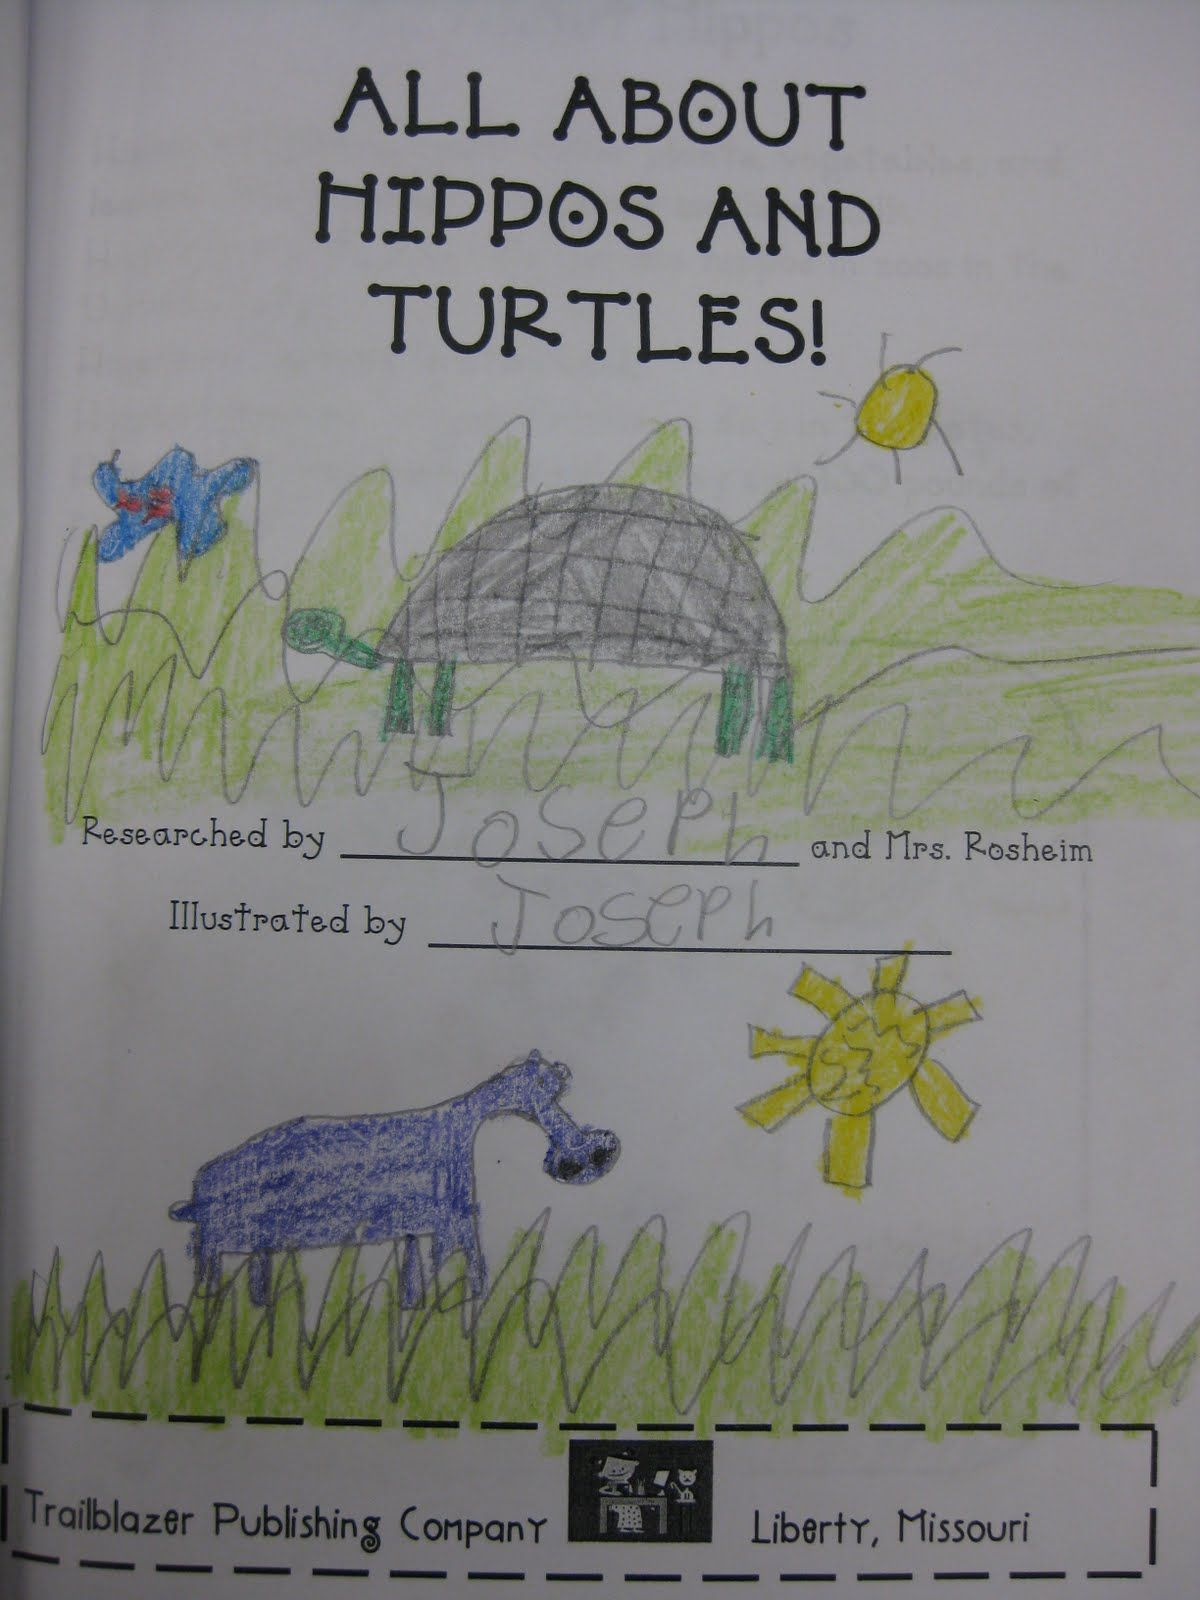 Kindergarten Research Project On Hippos And Turtles Based